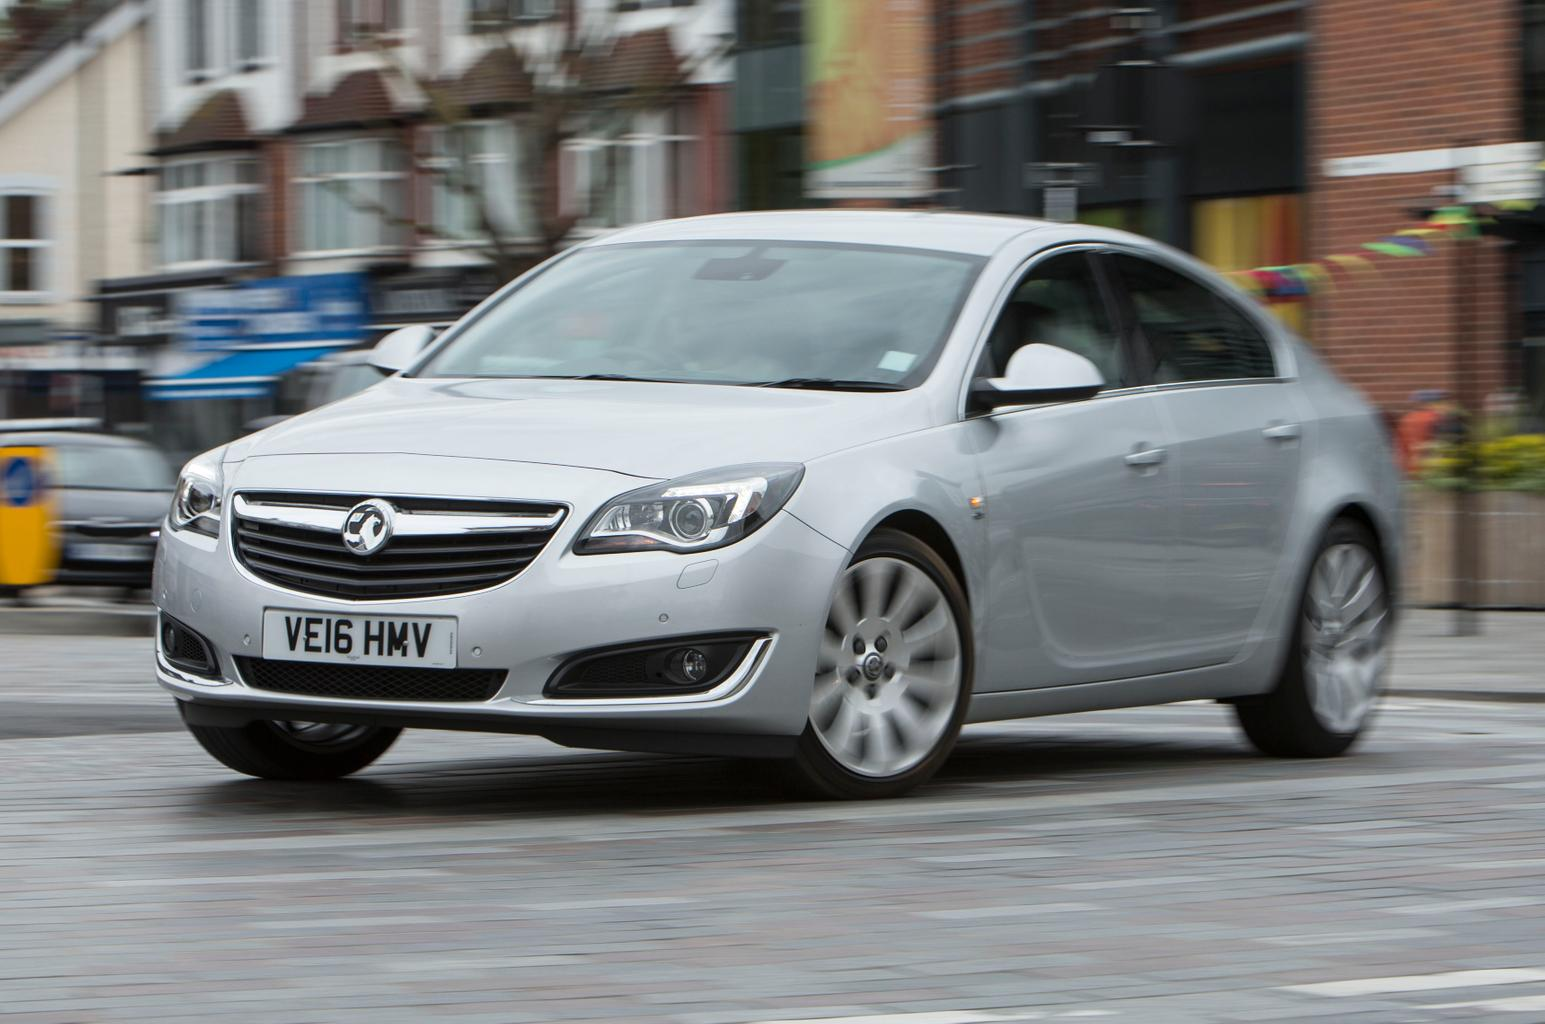 Used Vauxhall Insignia 08-17 long-term review